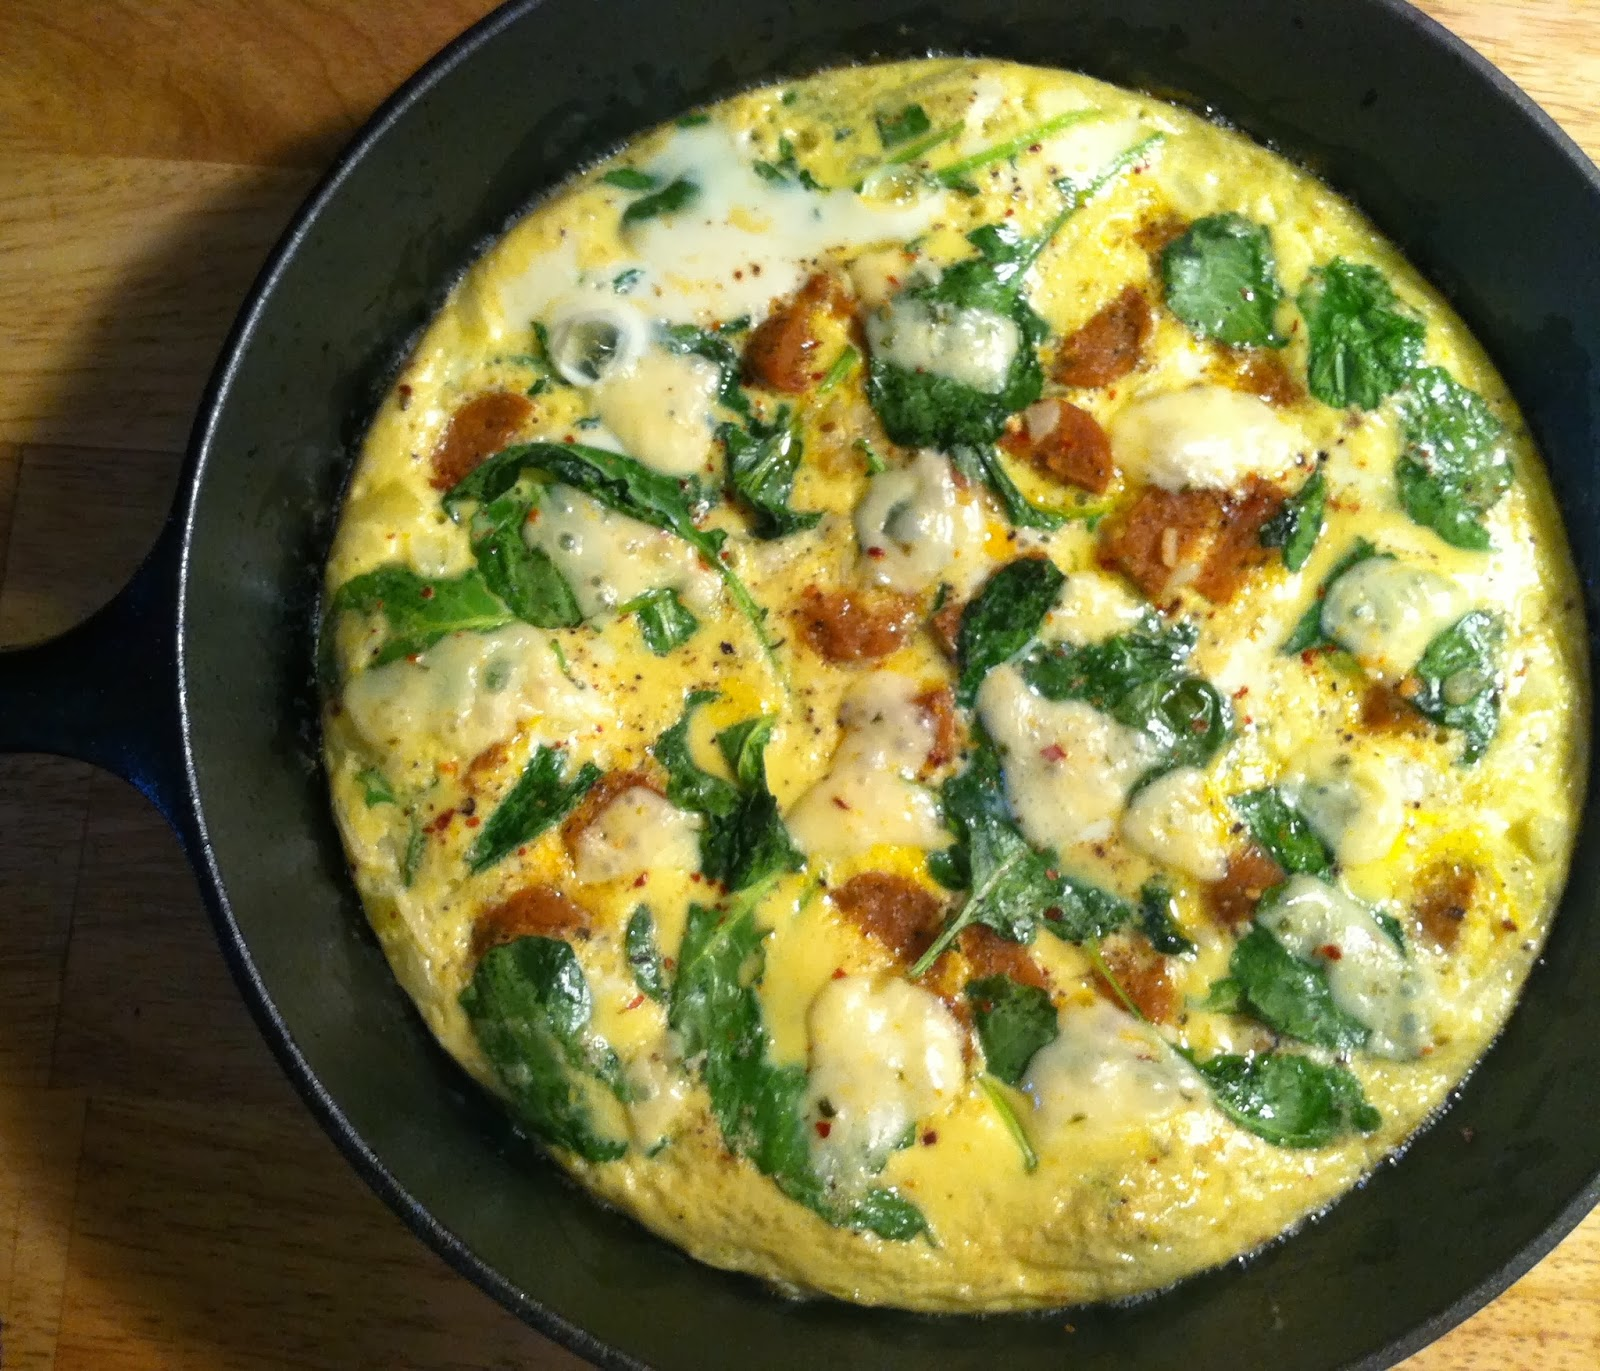 Kale, Onion, and Sausage Frittata | The Economical Eater